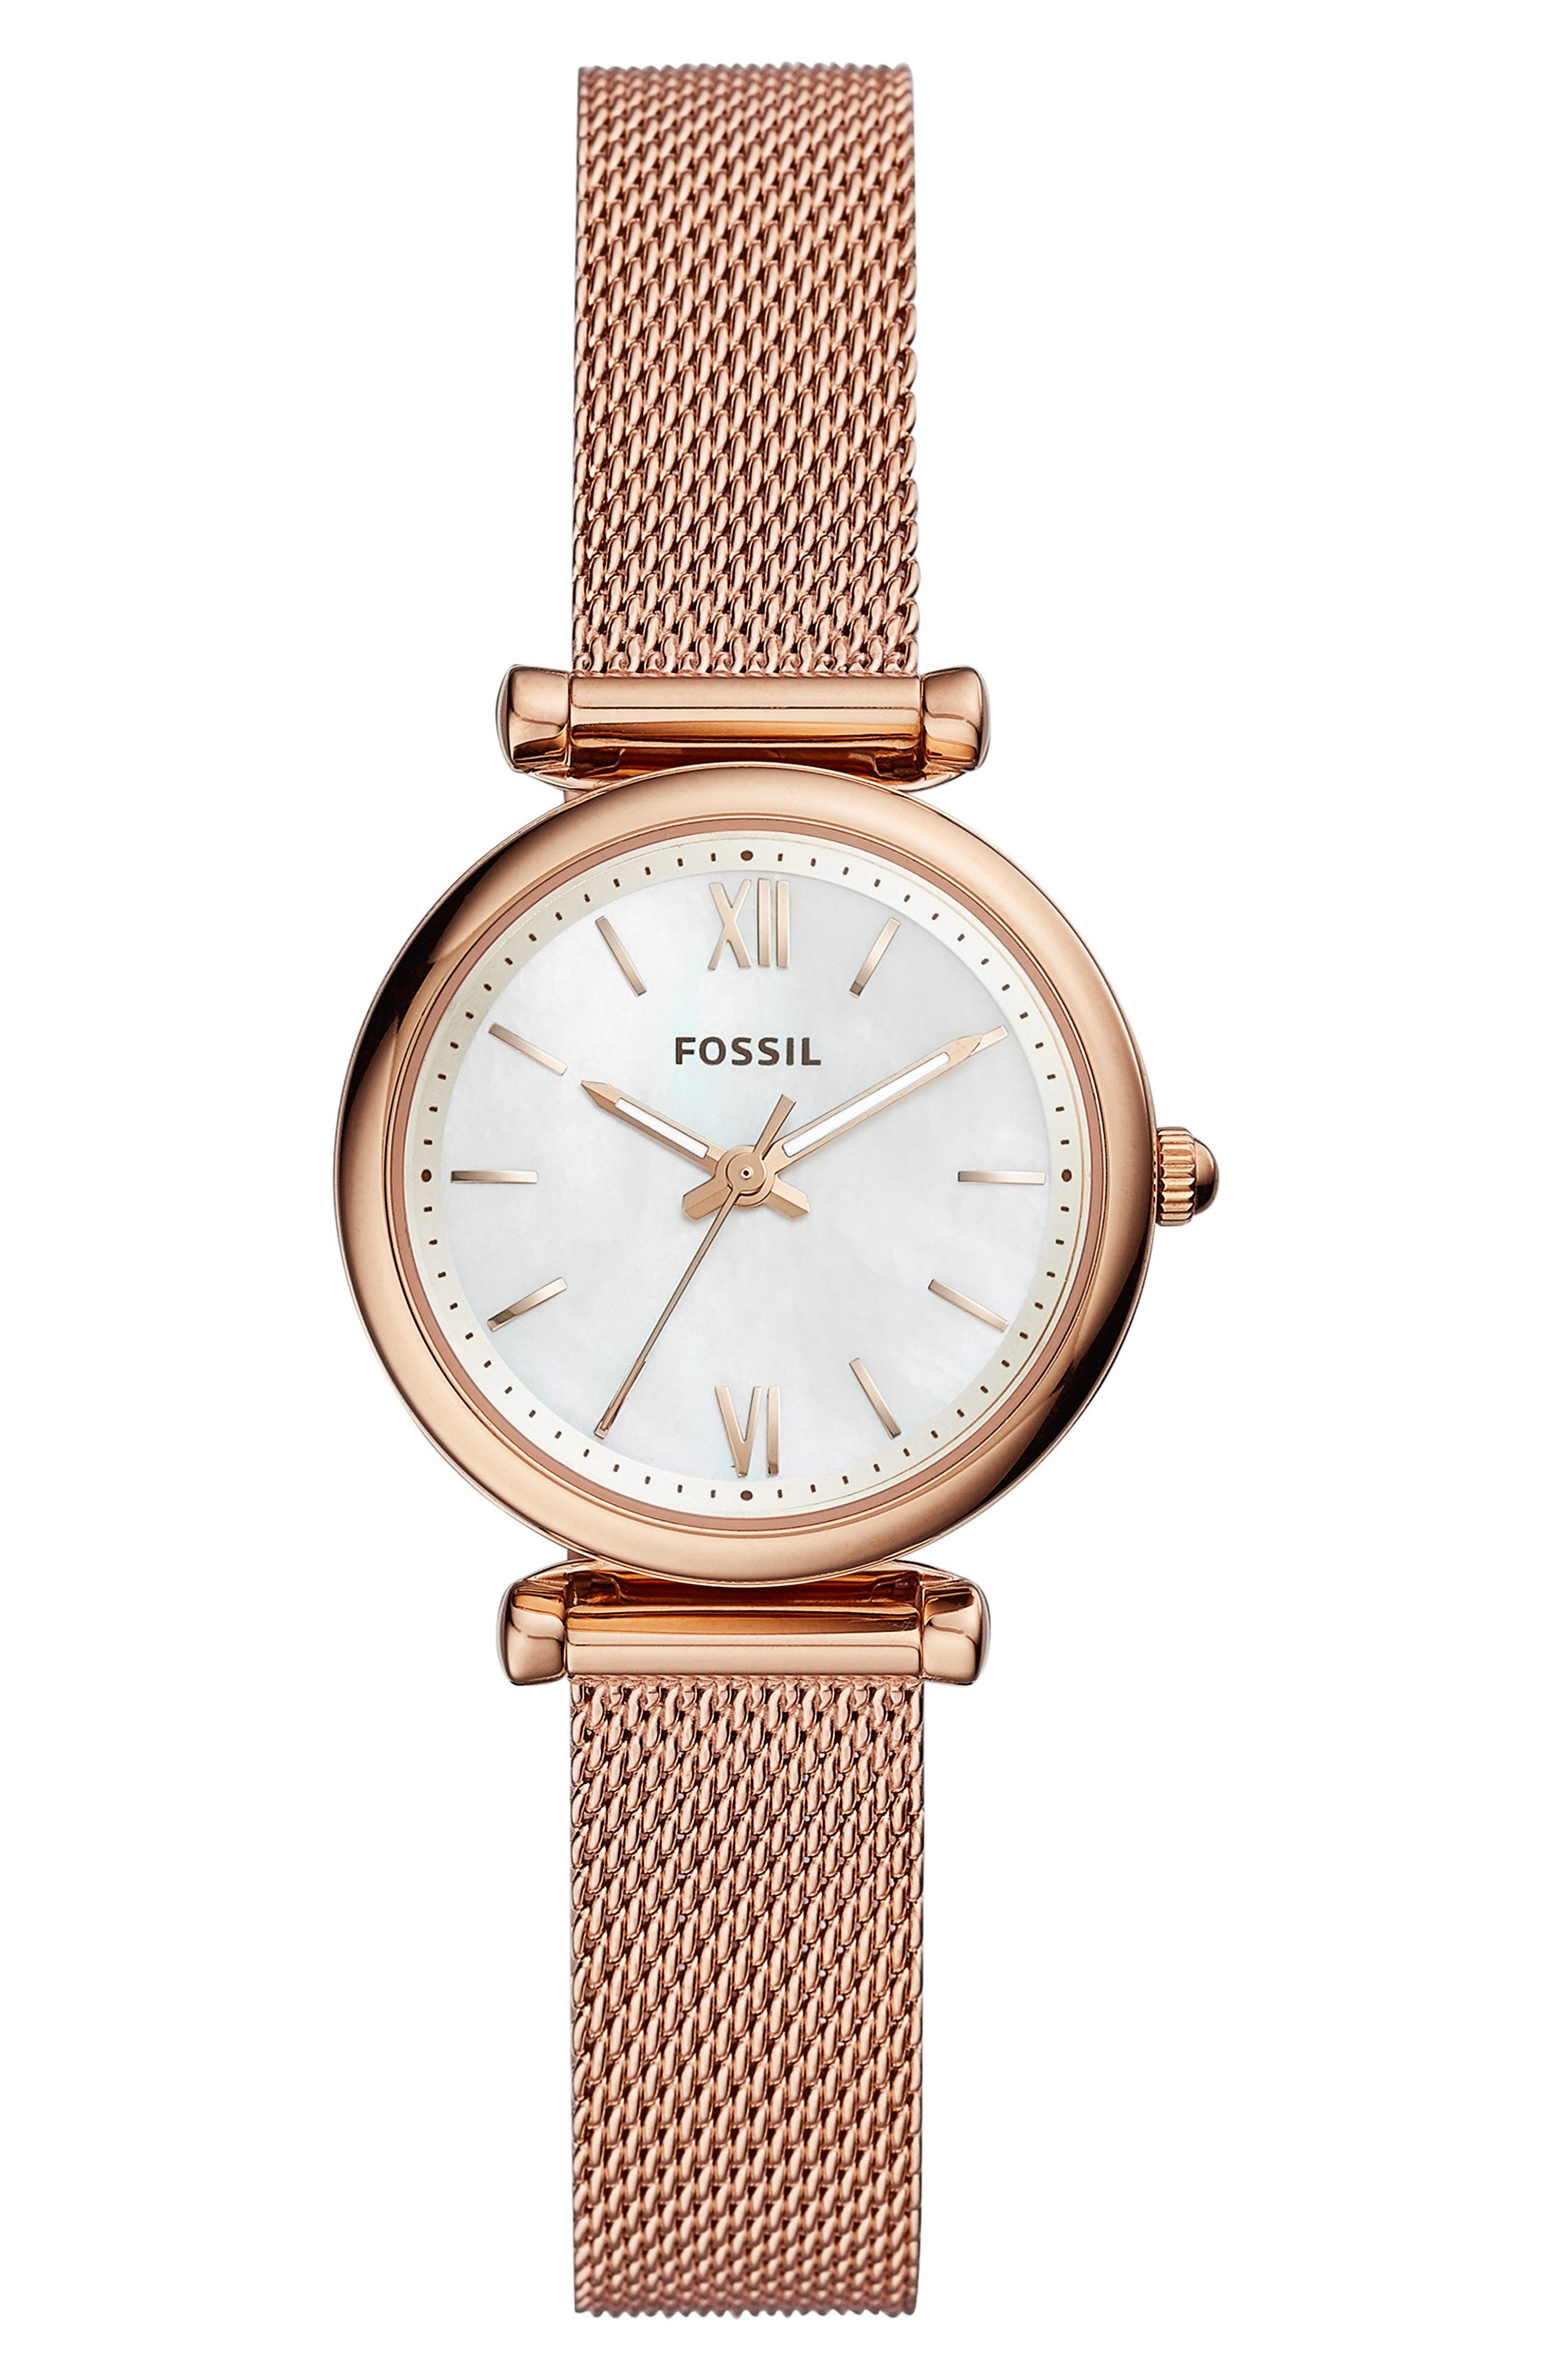 FOSSIL, Mini Carlie Mesh Strap Watch, 28mm, Main thumbnail 1, color, ROSEGOLD/MOTHER PEARL/ROSEGOLD